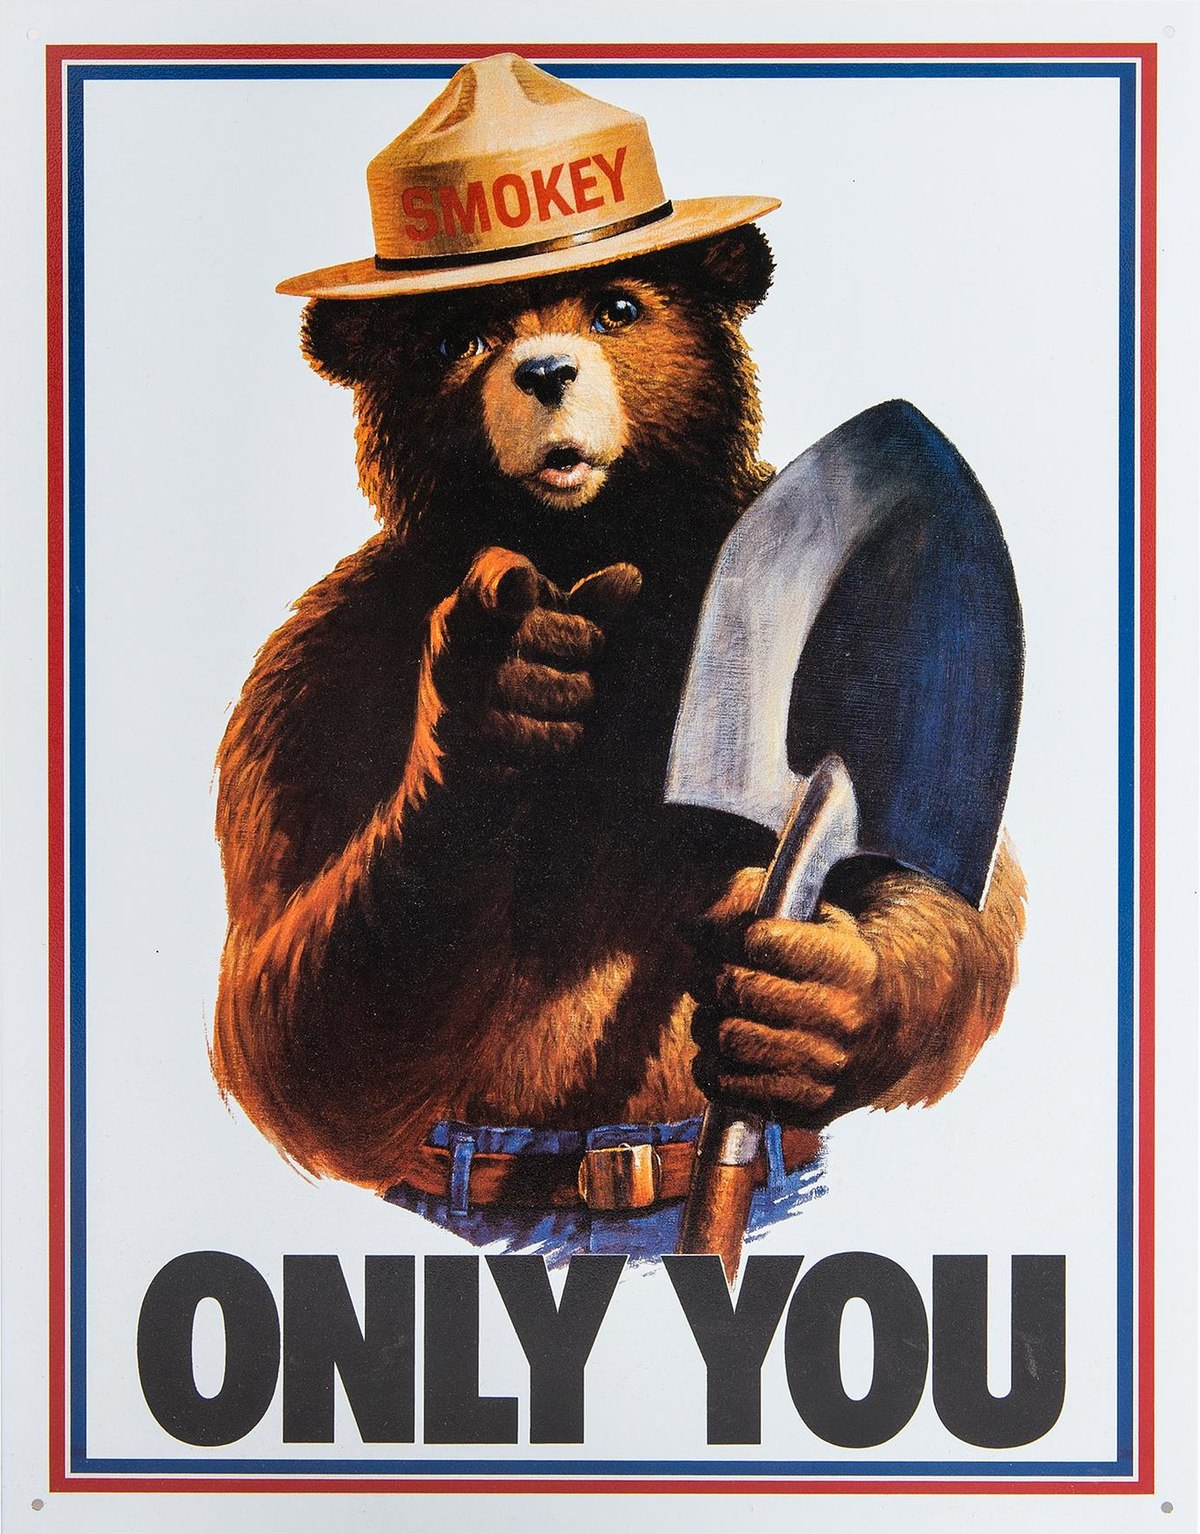 d51445118c6 Smokey Bear - Wikipedia